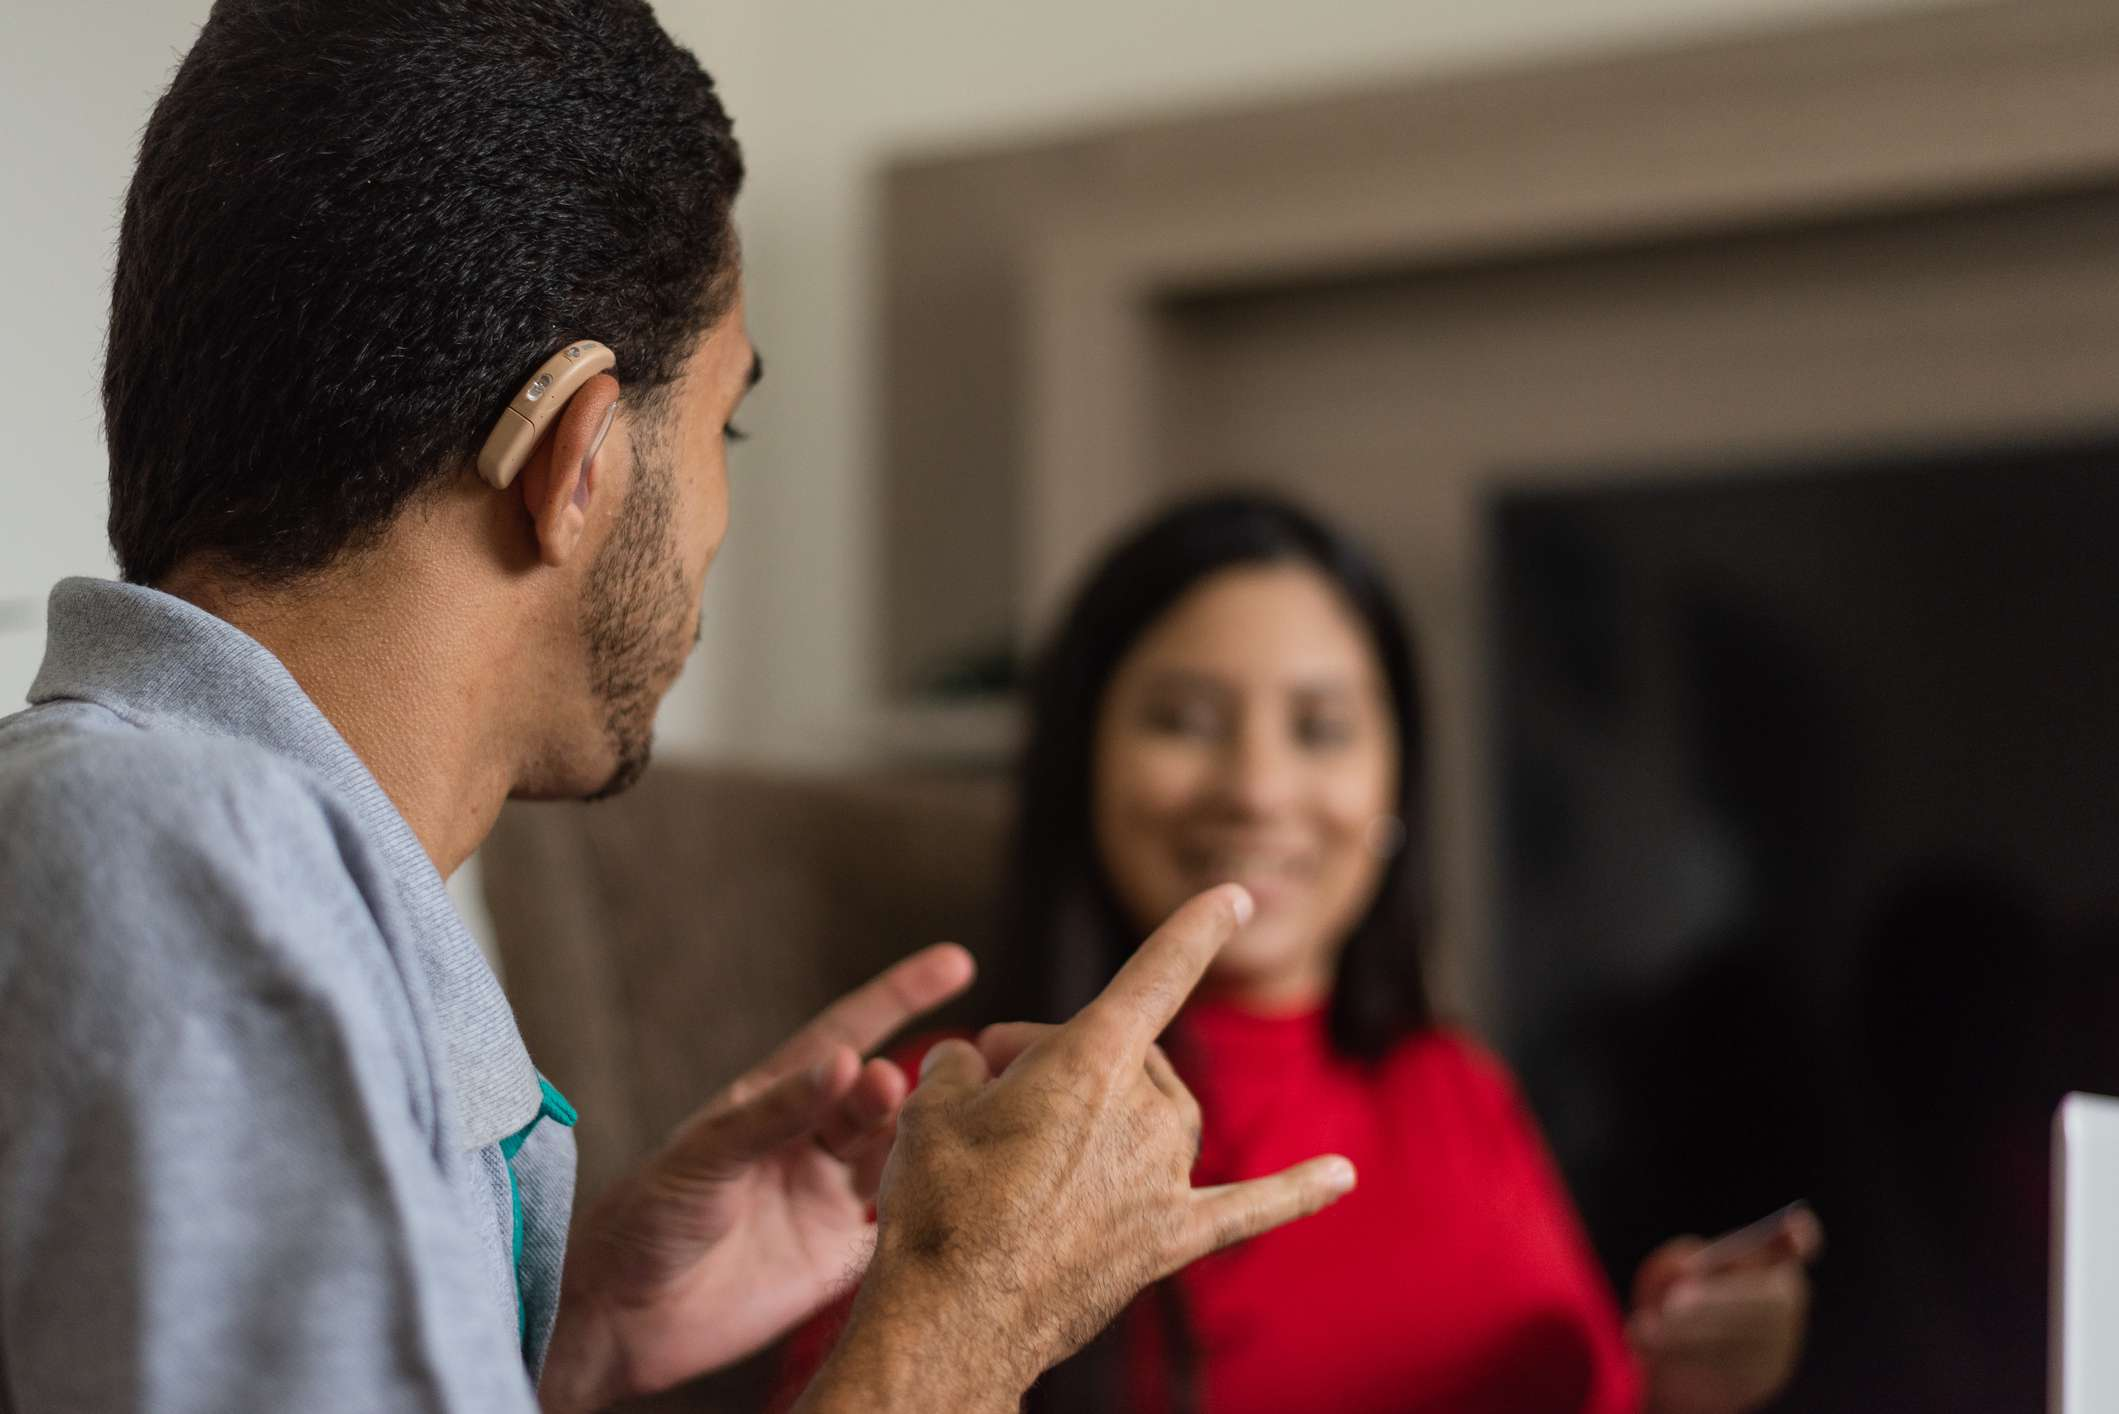 Two people having a conversation using ASL.